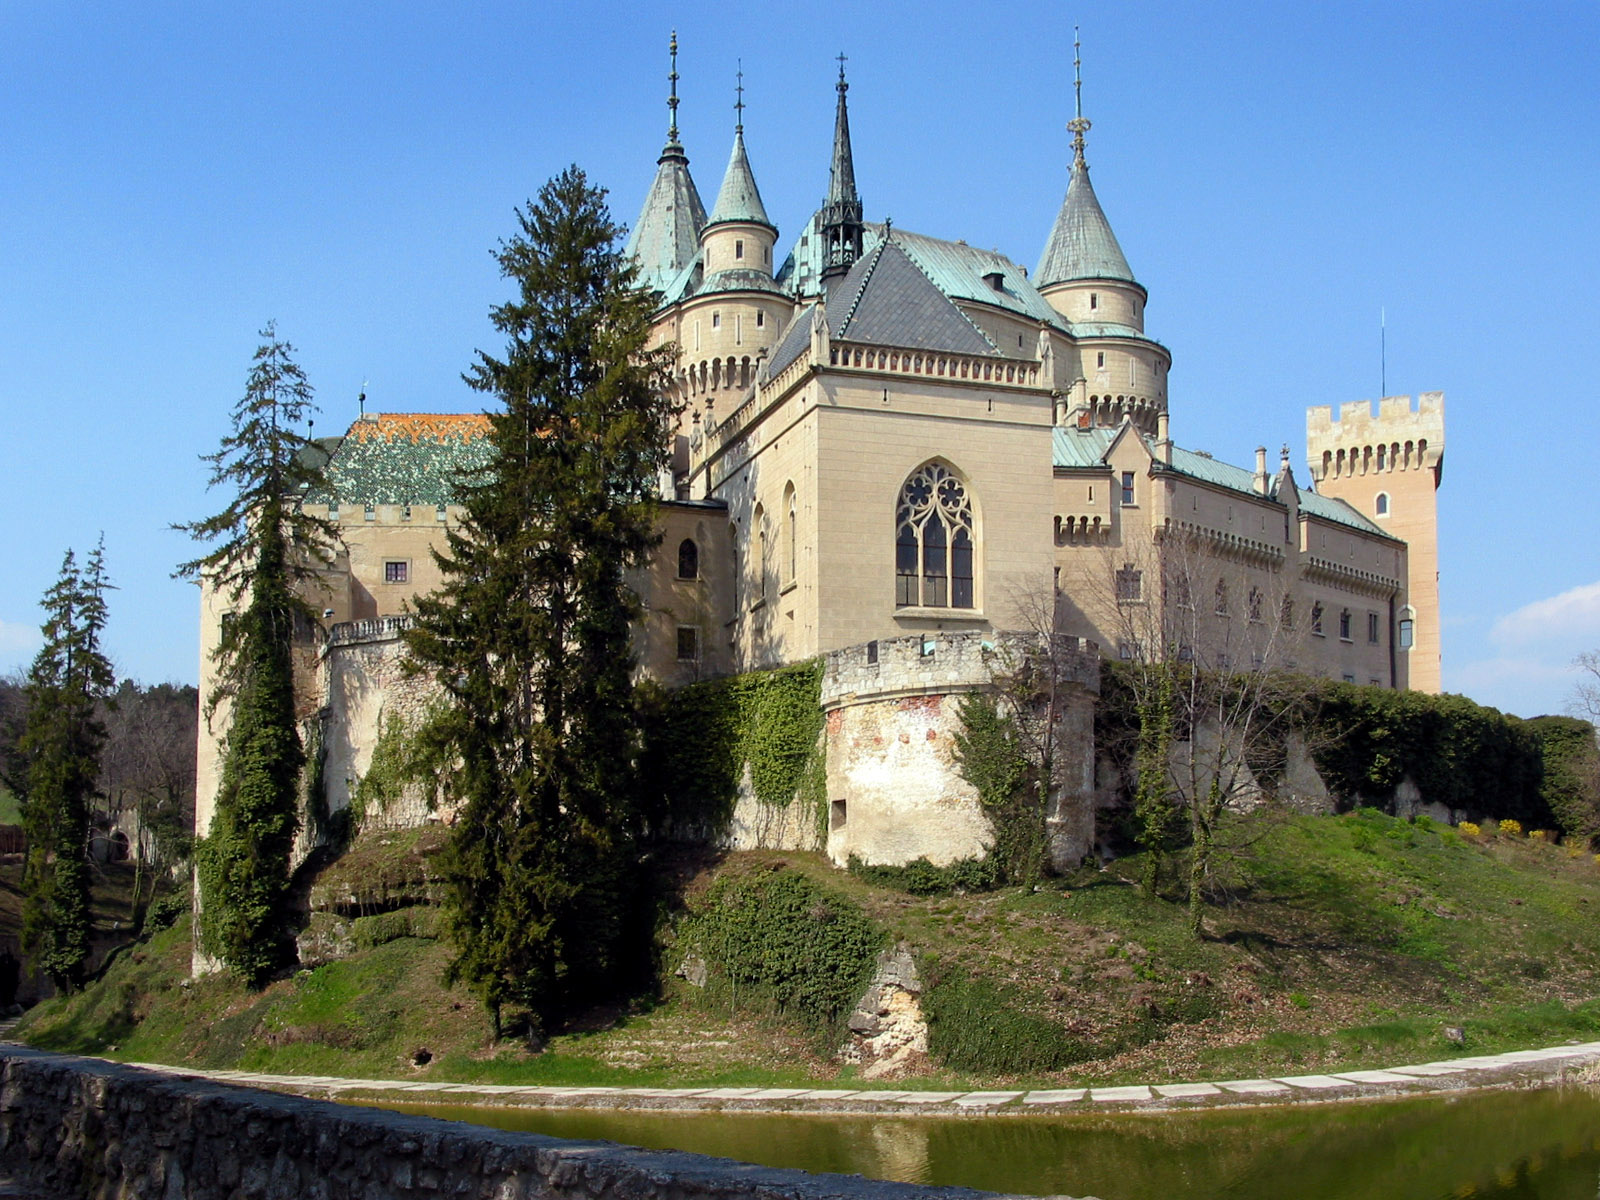 Bojnice Castle (photo by Peter Fratrič)